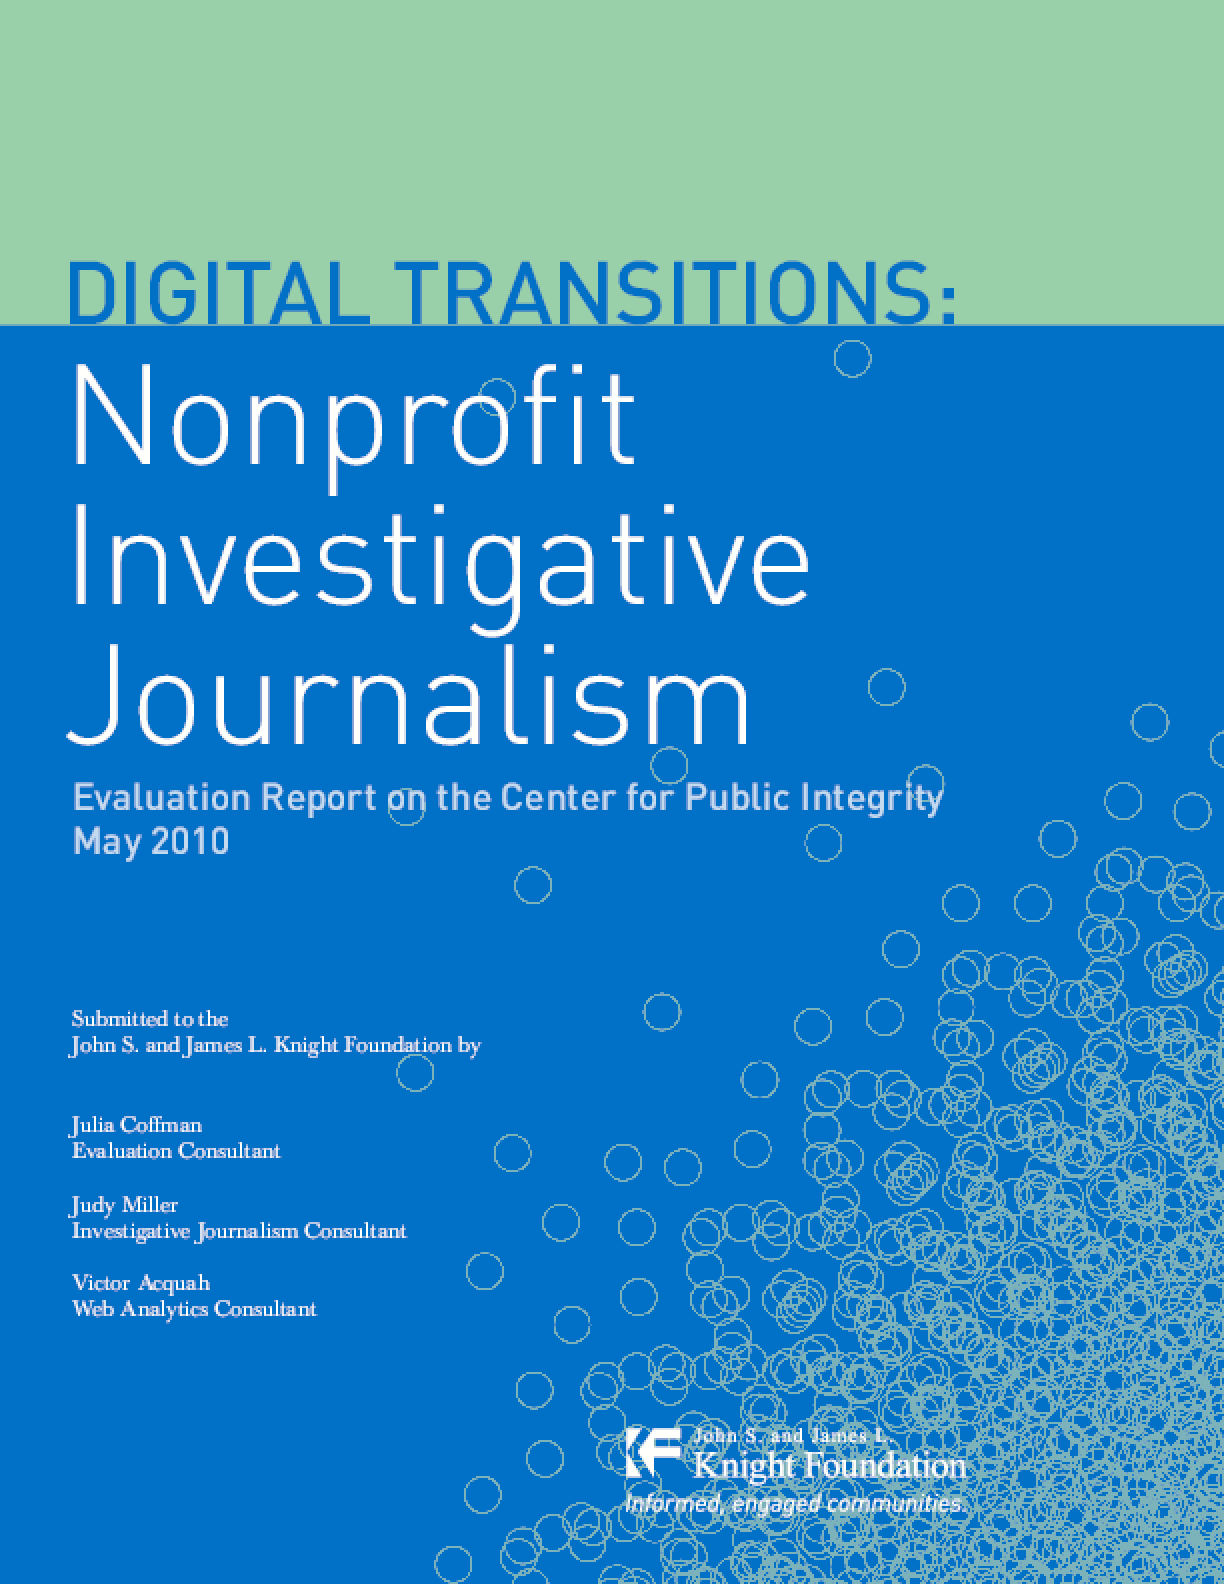 Digital Transitions: Nonprofit Investigative Journalism: Evaluation Report on the Center for Public Integrity